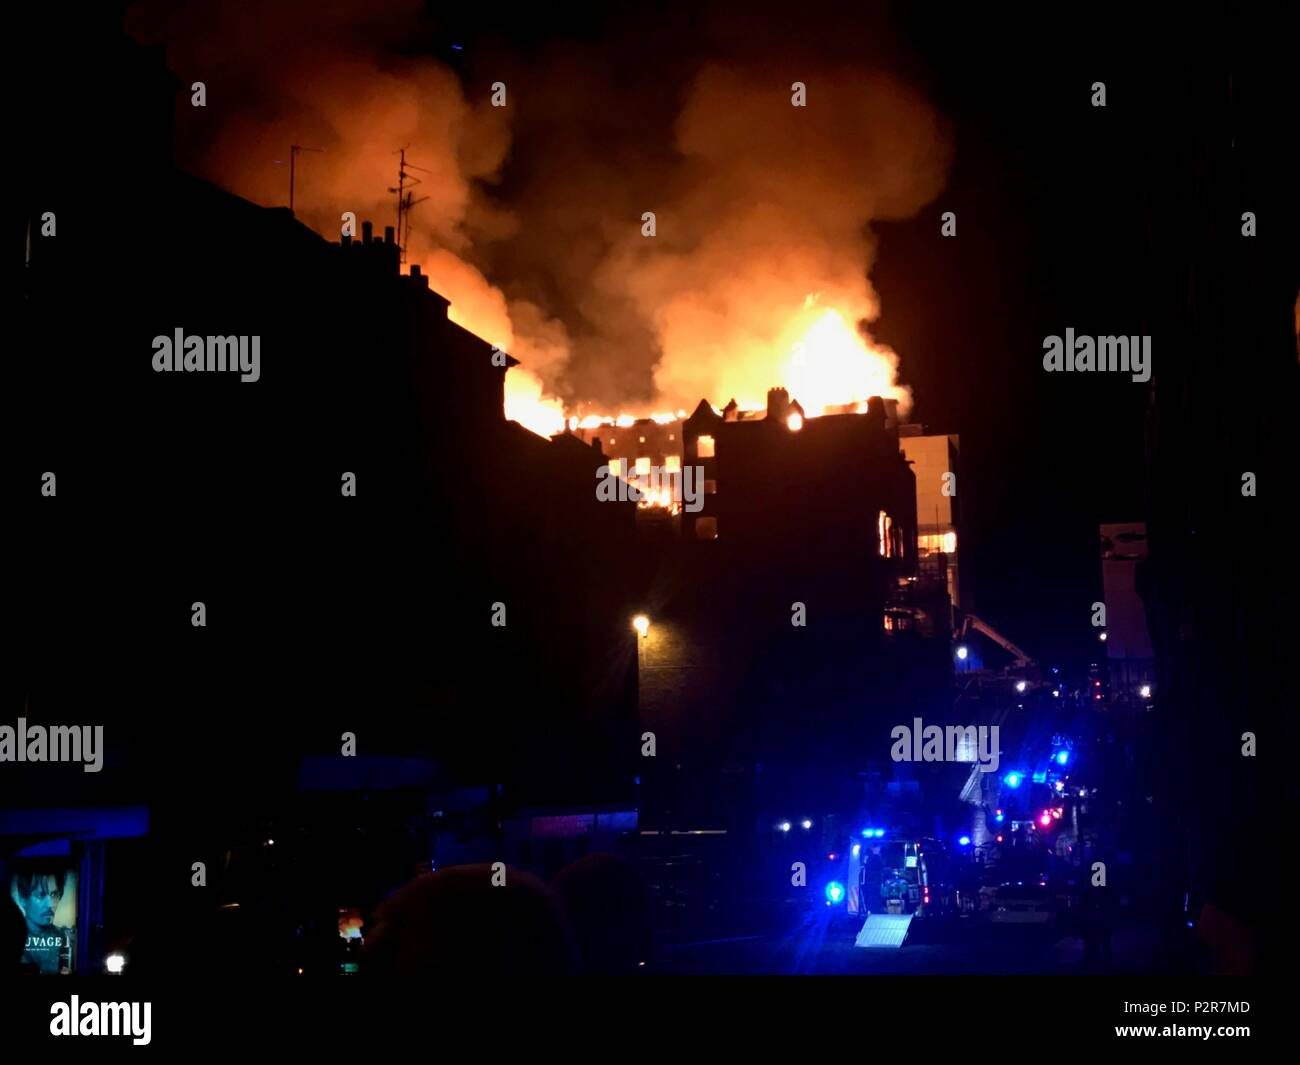 Glasgow, Scotland, UK. 15th June, 2018. The Glasgow School of Art, Mackintosh building caught fire late Friday night about 11:20 PM. More than 120 firefighters and 20 fire engines responded to the fire. Credit: News Pictures/Alamy Live News - Stock Image